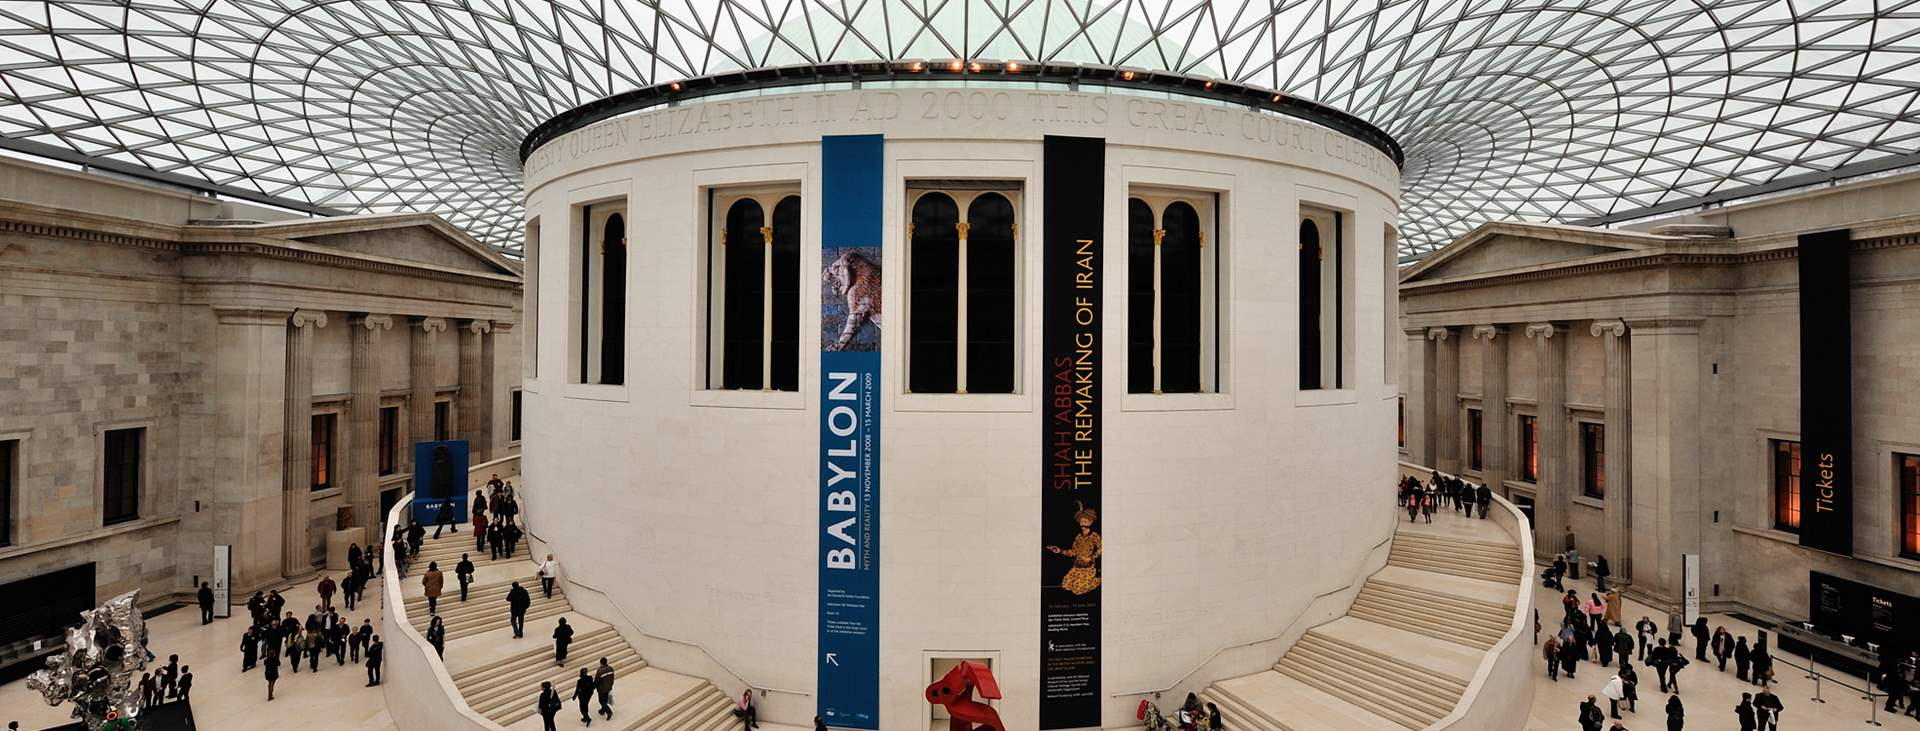 British Museum –  En opplevelse i London